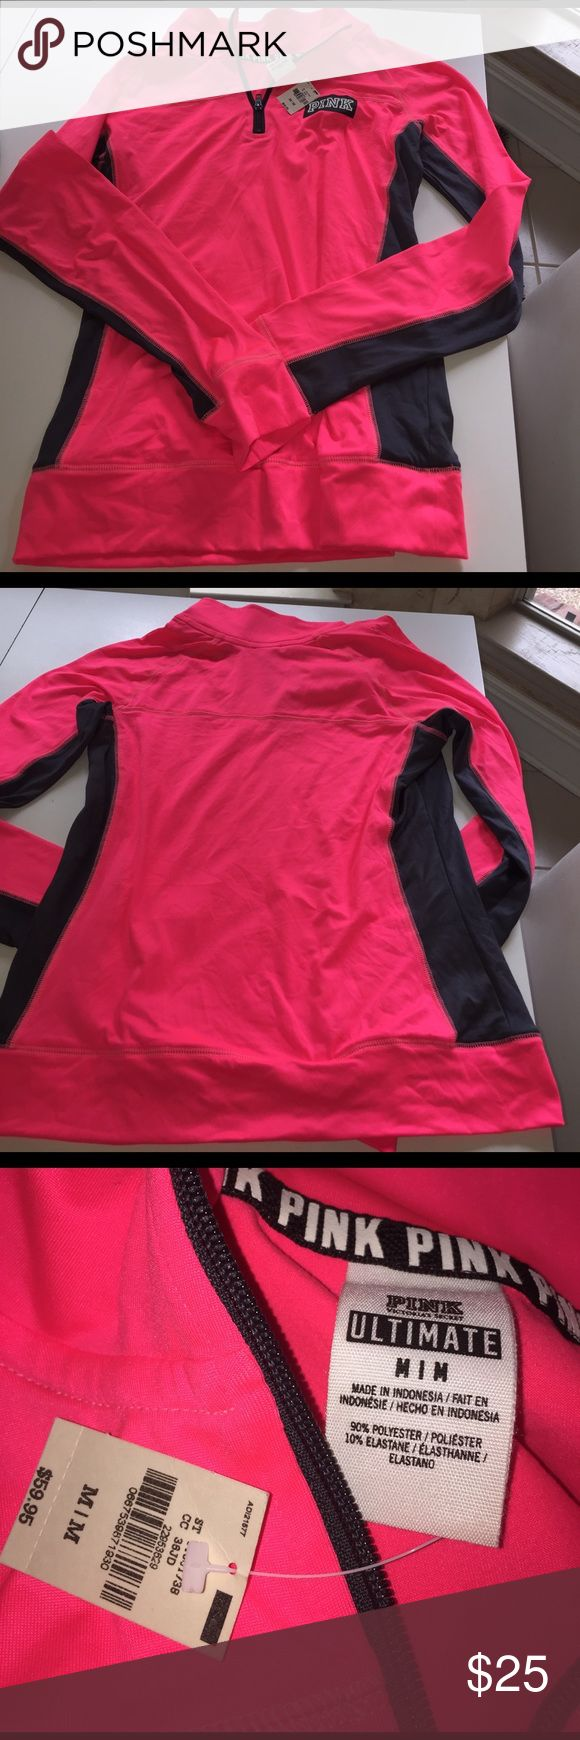 Victoria secrets PINK medium pullover New with tags Victoria secrets PINK long sleeve zipper at neck ladies medium neon pink and dark gray tag says 59.95. Very soft. Light weight material. You will LOVE this. Underarm to underarm 19inches, underarm to bottom 18 inches. Underarm to end of sleeve 23 inches. Waist side to side 19 inches. PINK Victoria's Secret Tops Sweatshirts & Hoodies